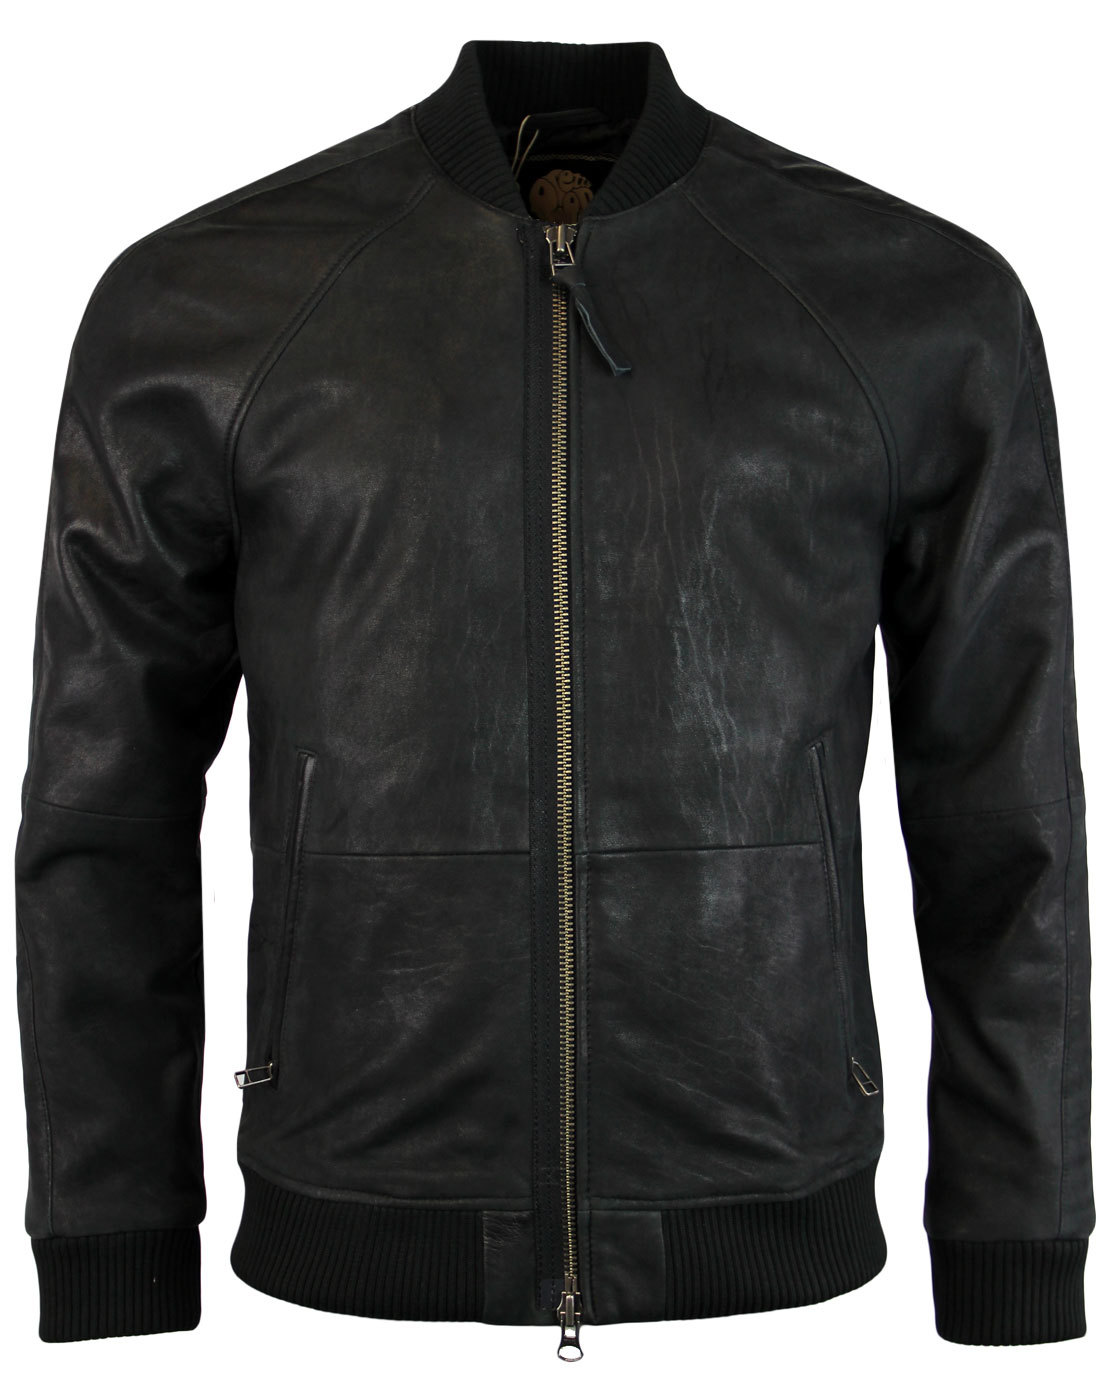 PRETTY GREEN Albion Retro 1970s Indie Leather Bomber Jacket Black